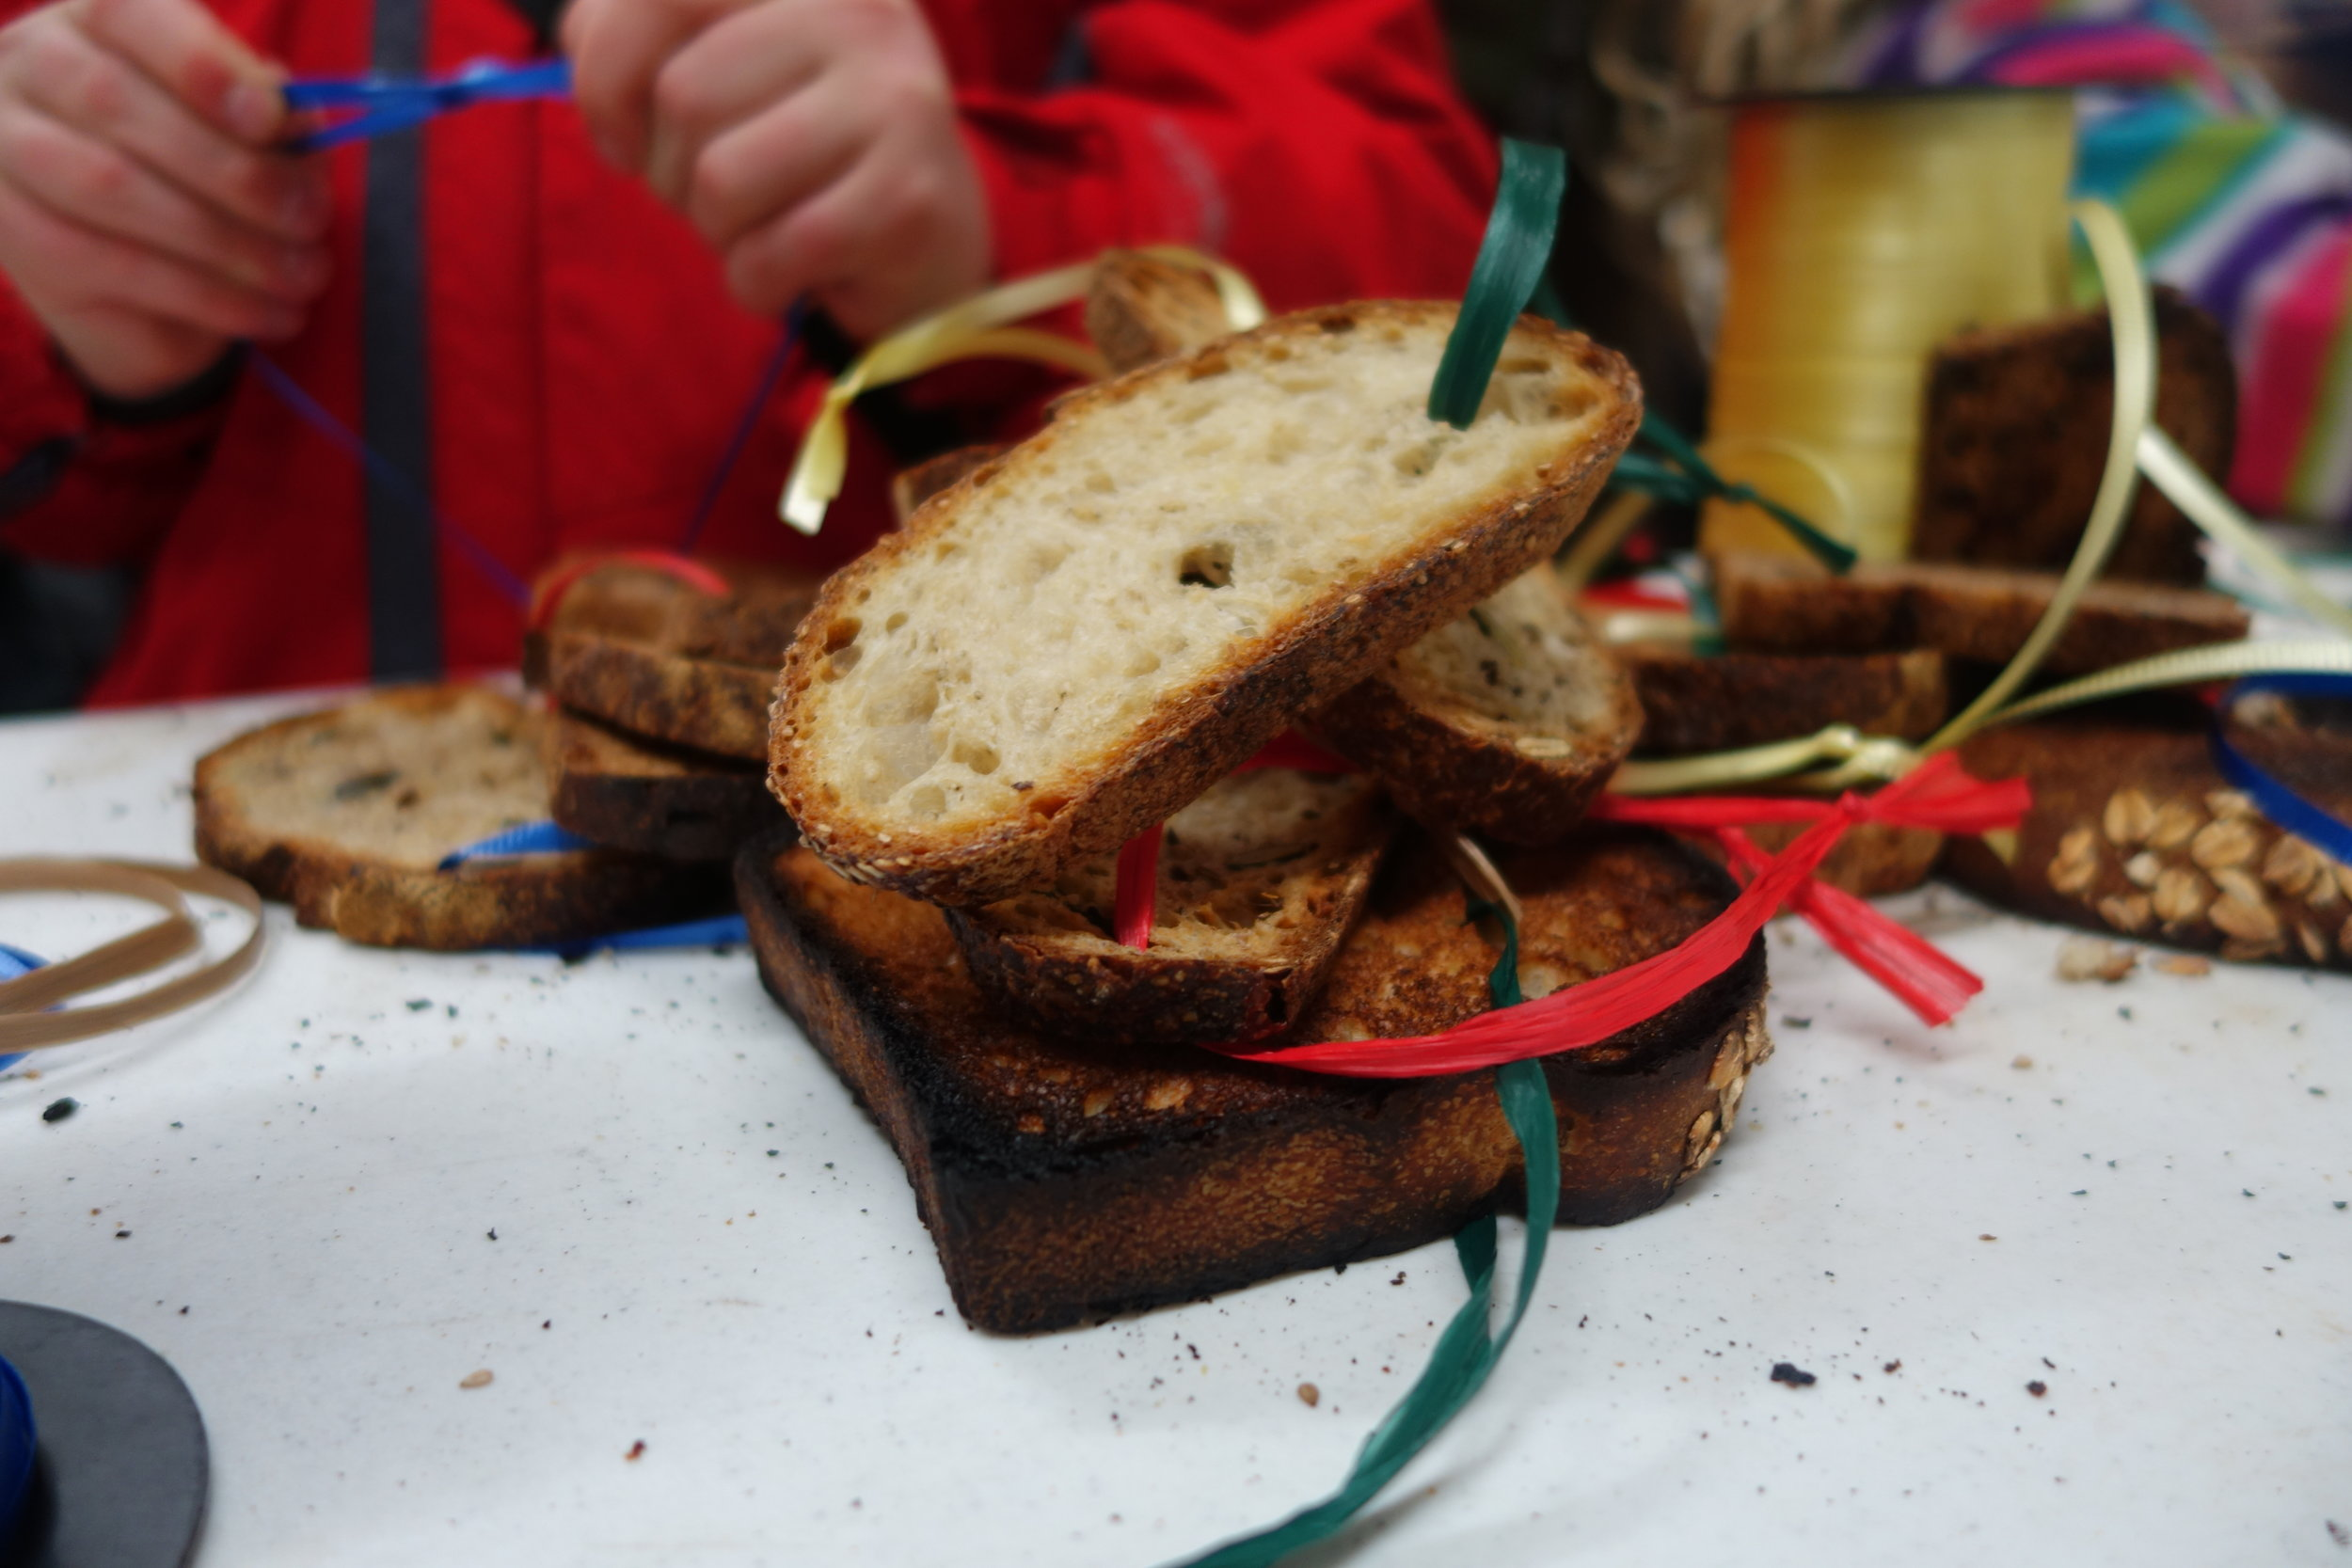 Making toast ornaments to hang on the trees